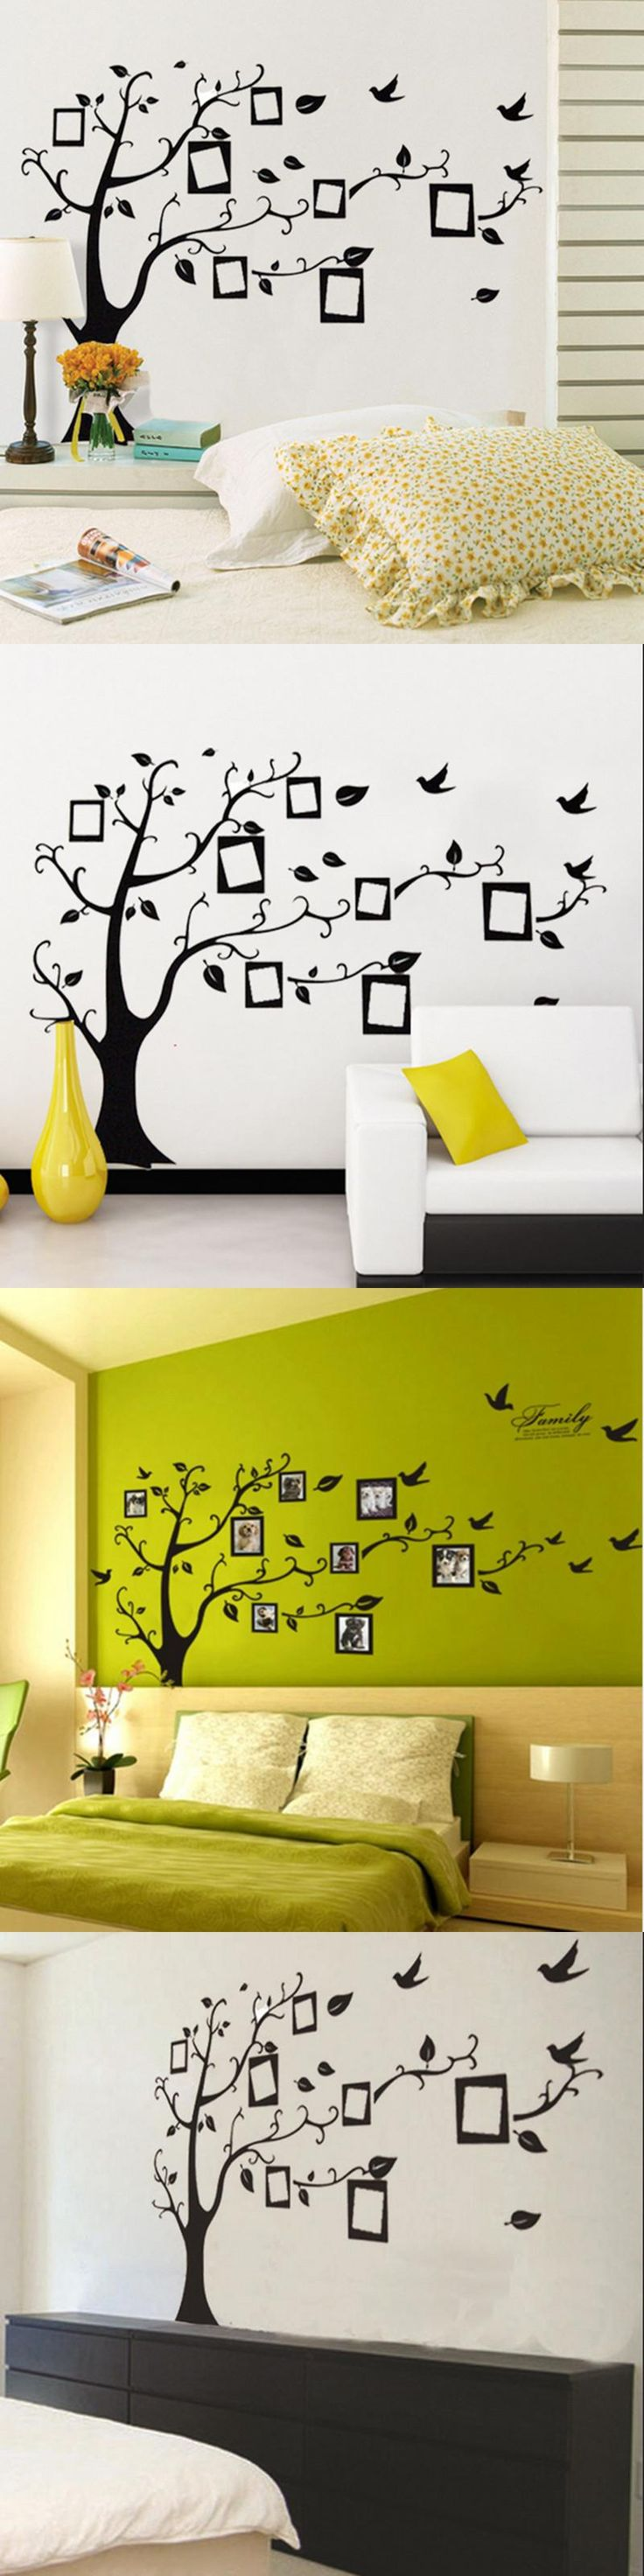 Family wall murals choice image home wall decoration ideas family wall murals gallery home wall decoration ideas best 25 wall mural posters ideas on pinterest amipublicfo Gallery